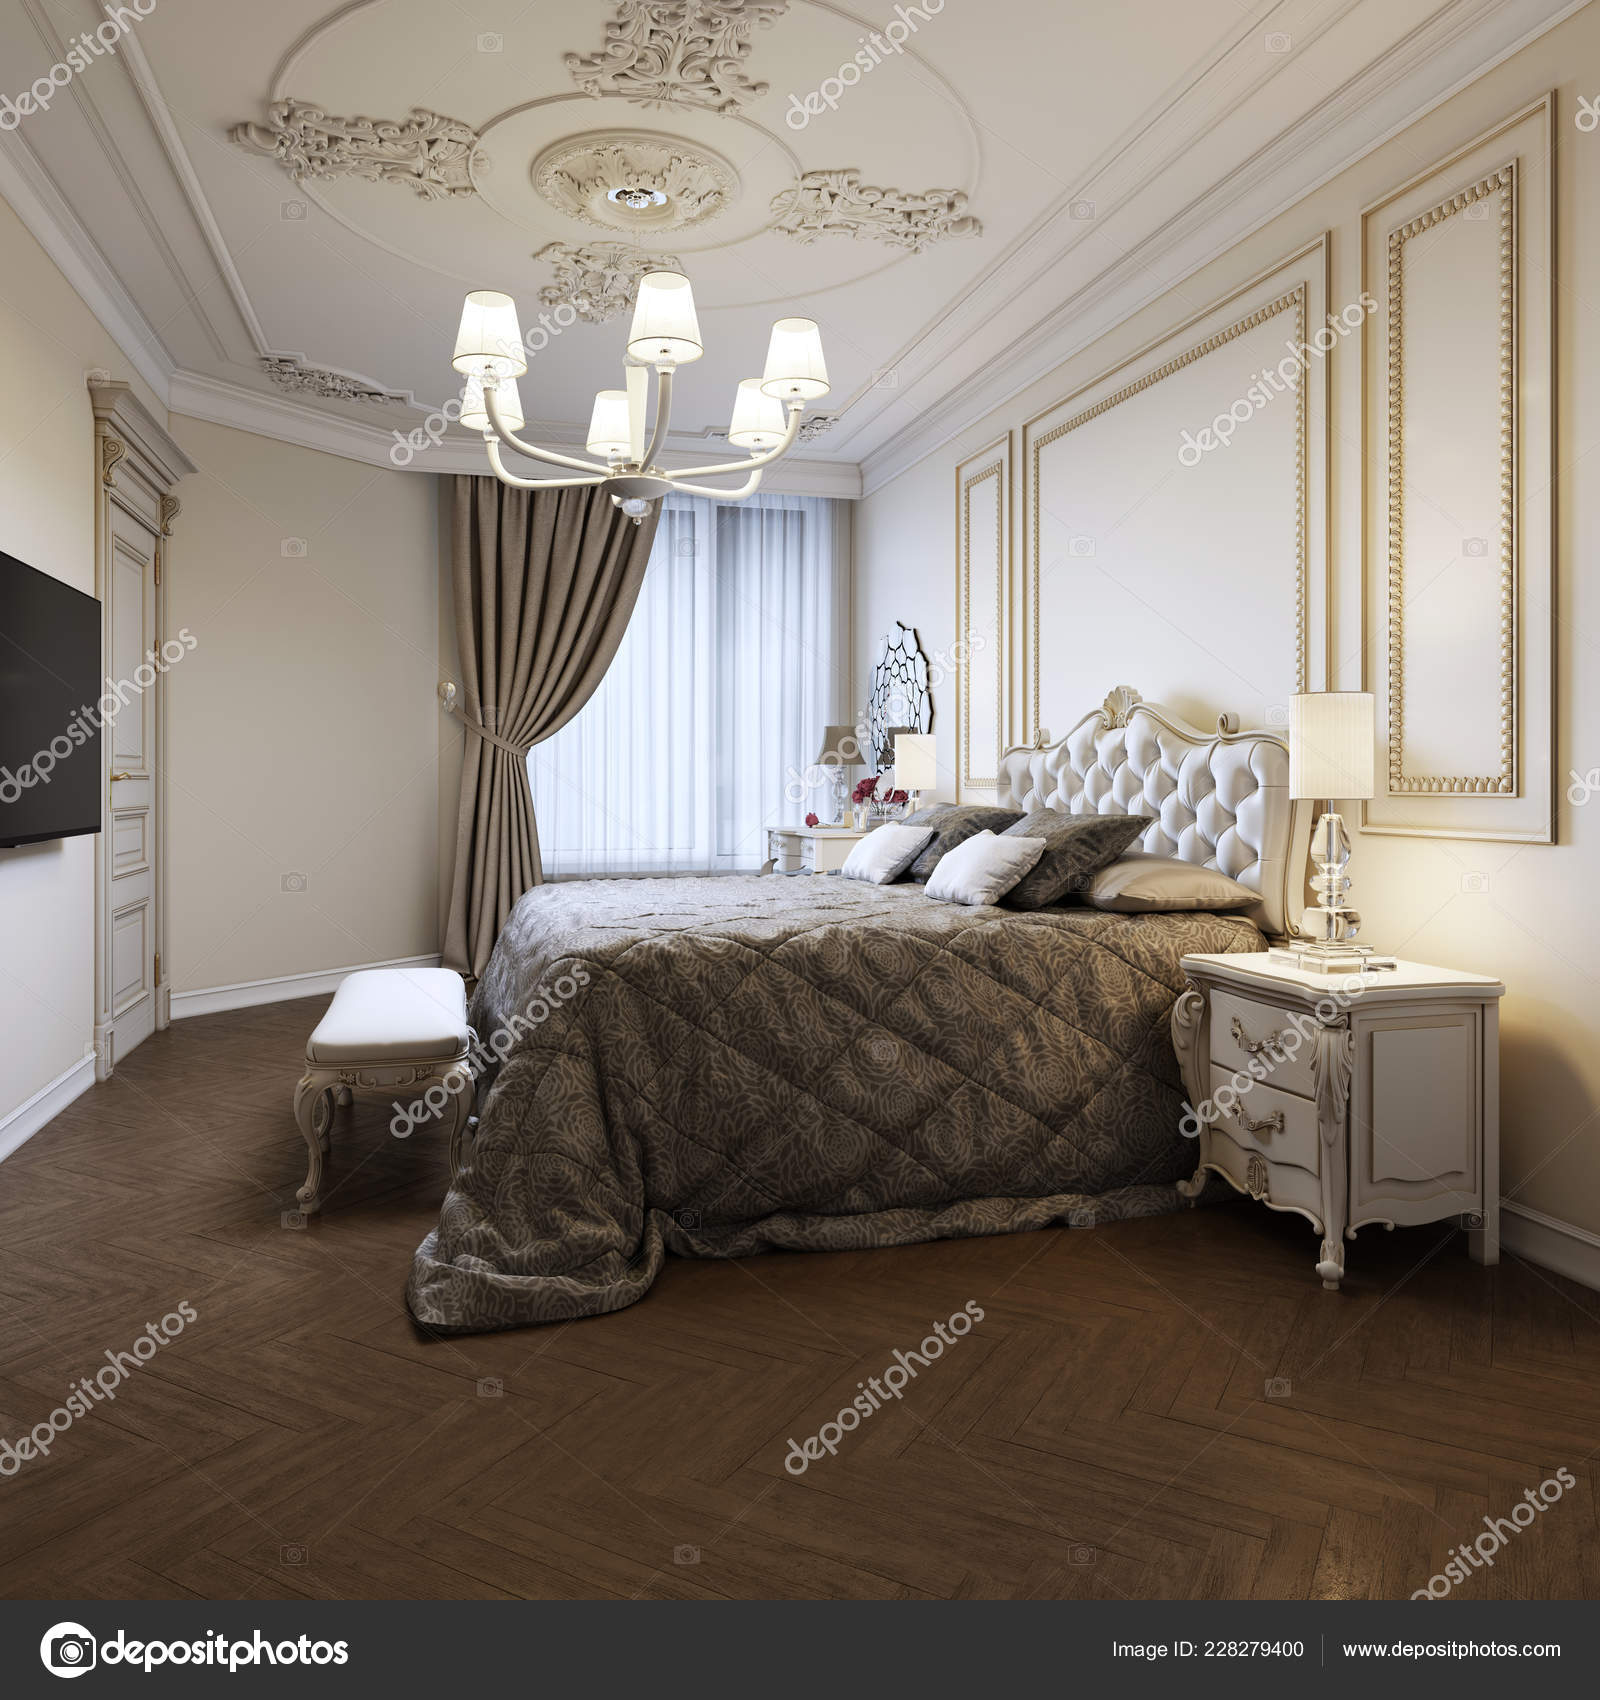 Urban Contemporary Modern Classic Traditional Bedroom Interior Design with  beige walls, Elegant furniture and bed linen. 15d rendering 15